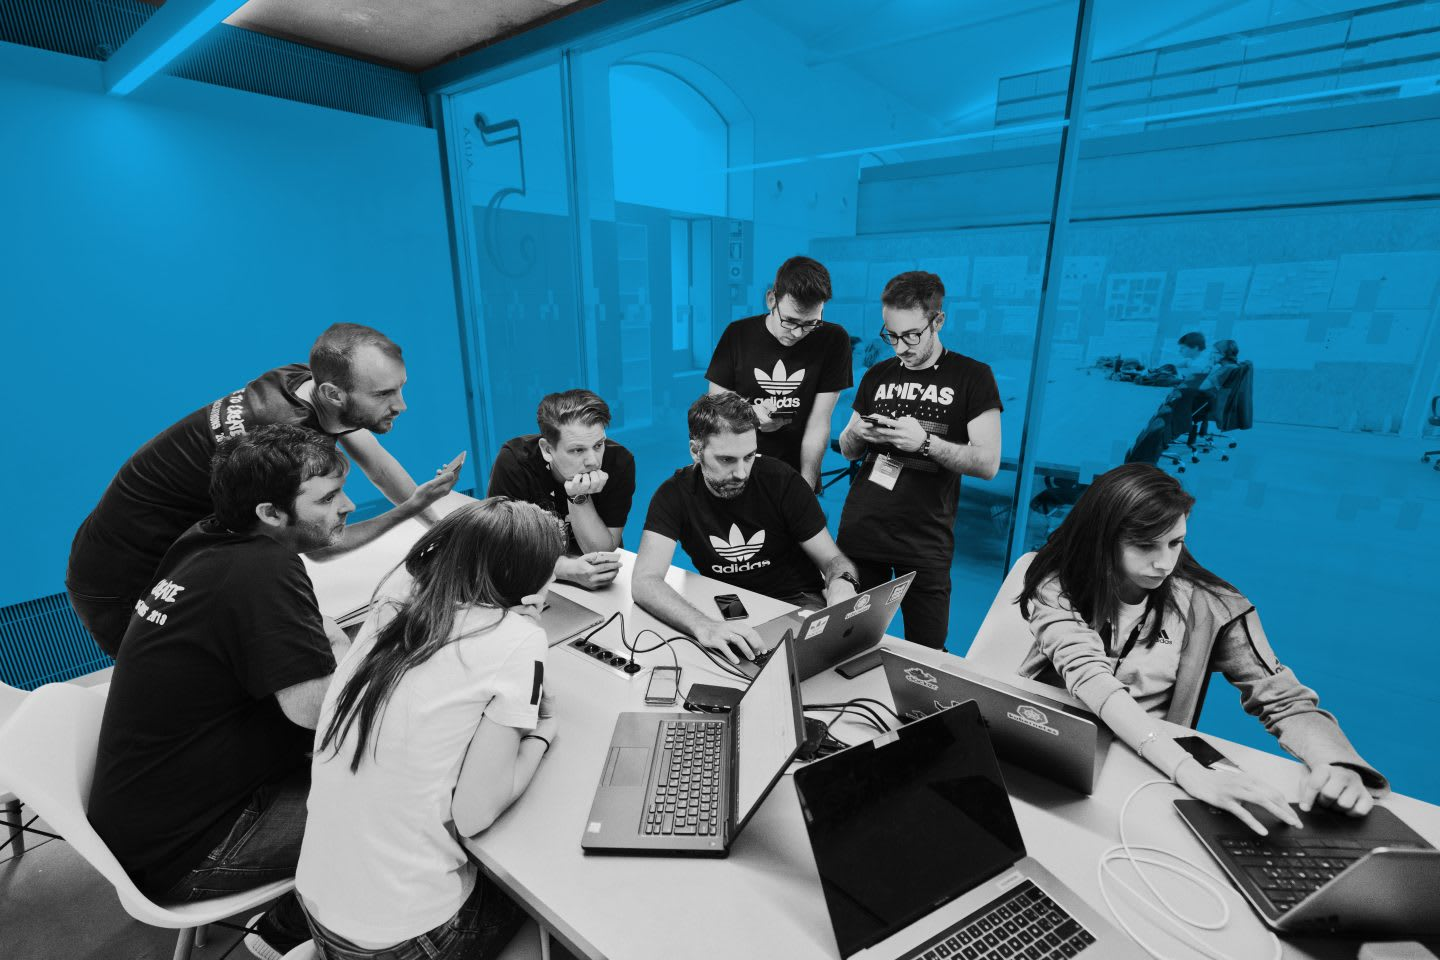 Participants of a Hackathon stand together and discuss their project, digital, ideas, innovation, technology, computers, hackathon, coding, group, teamwork, project, adidas, GamePlan A